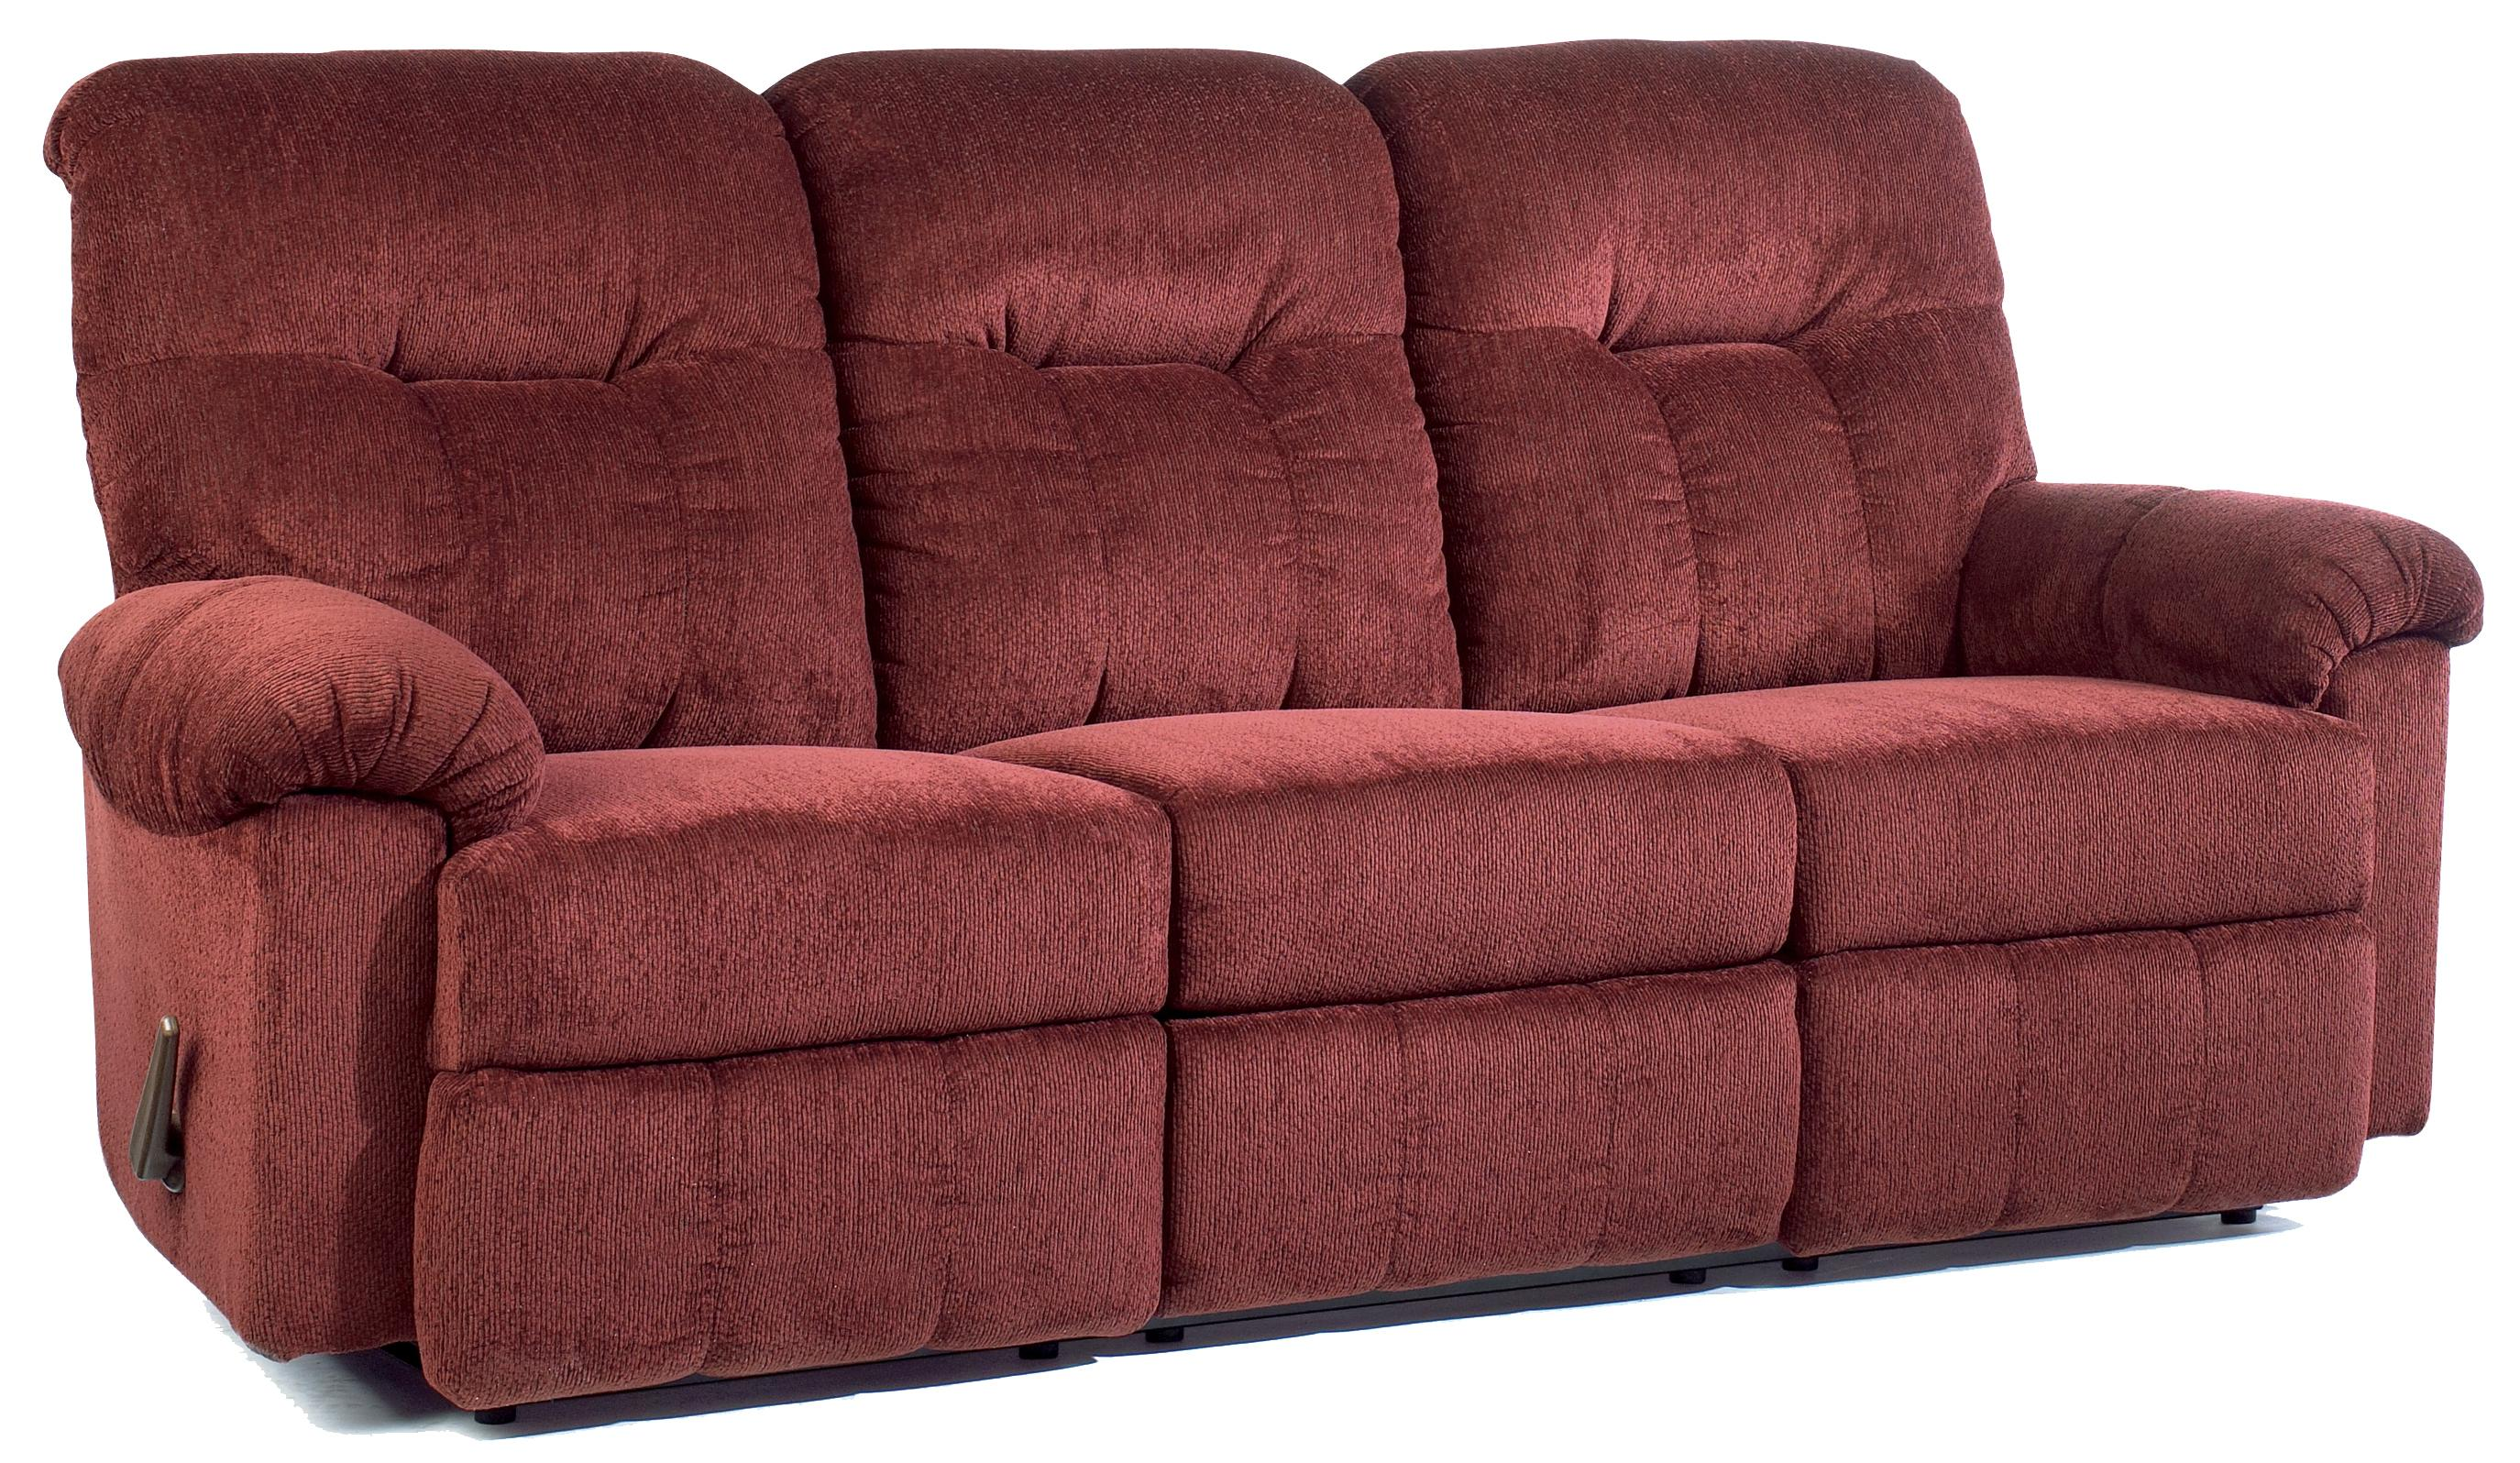 Best Home Furnishings Ares Power Reclining Sofa - Item Number: S350RP4